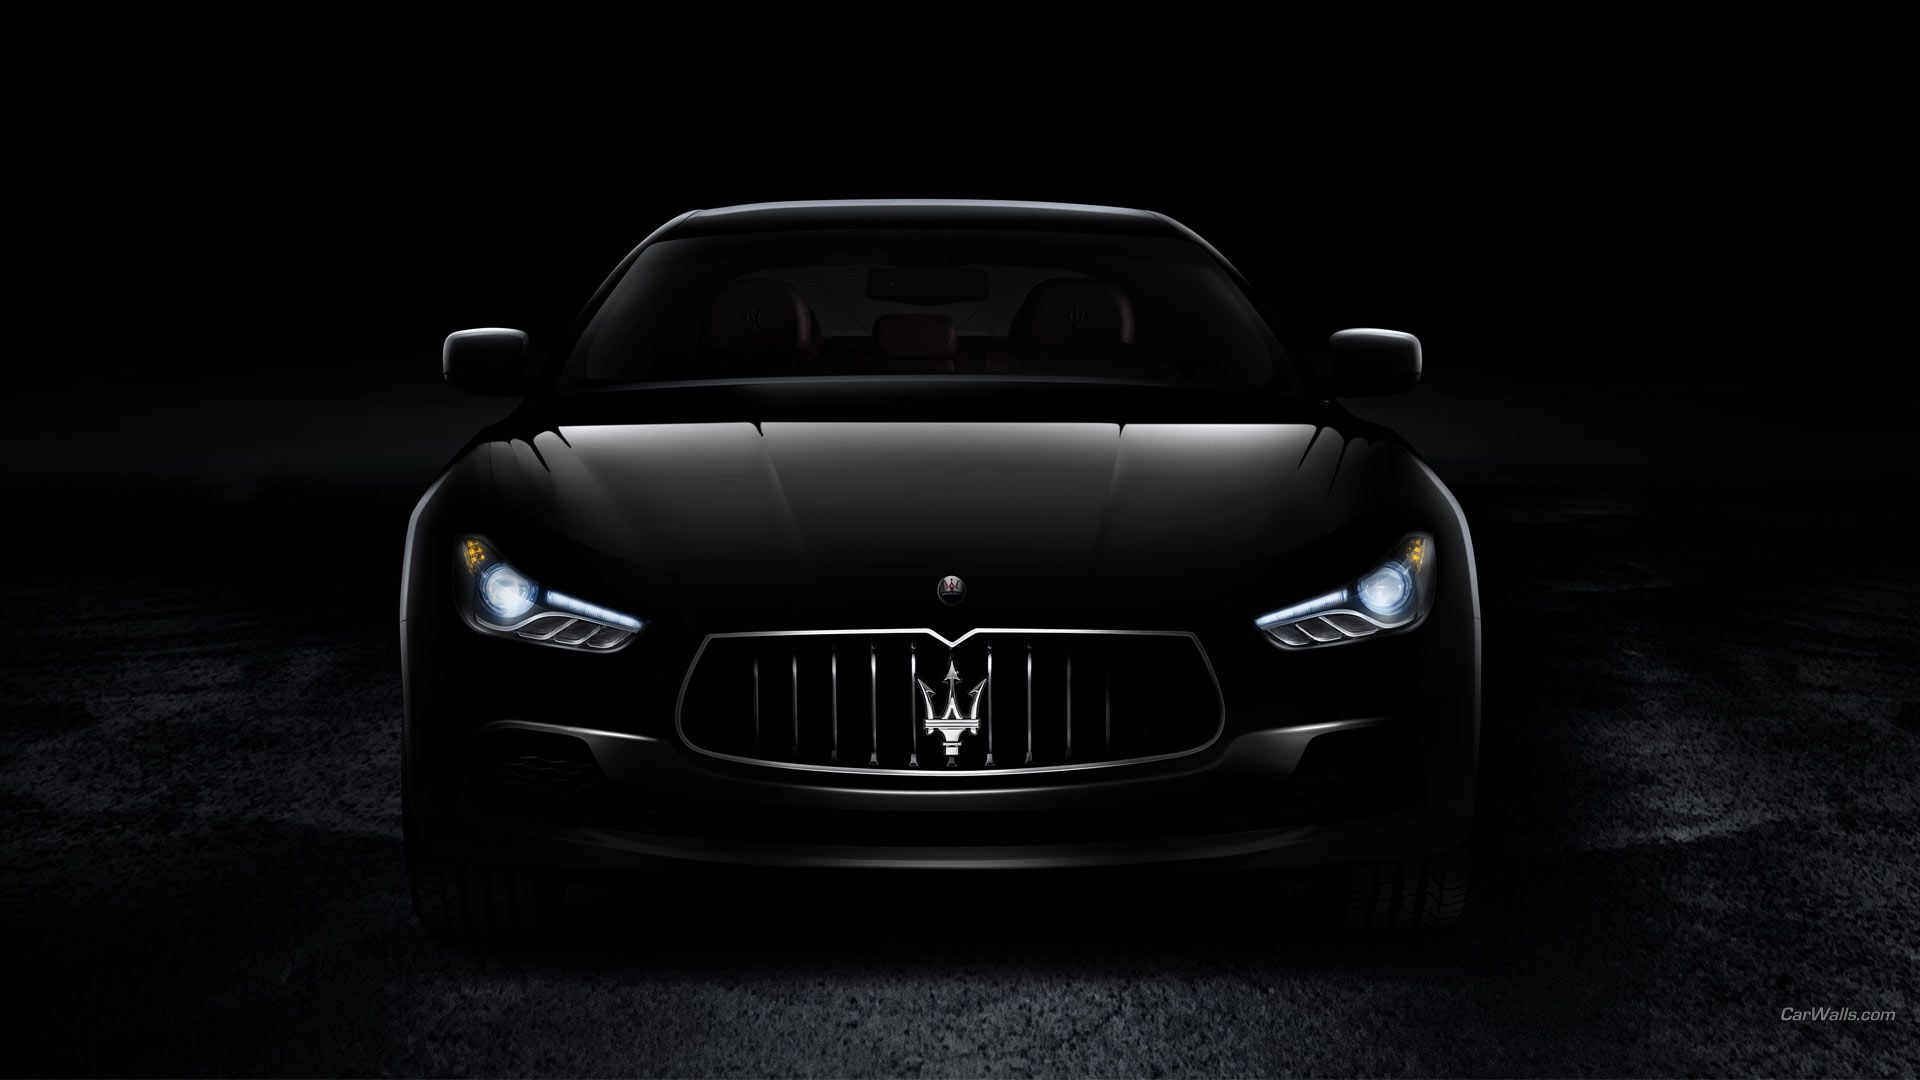 40 Maserati Ghibli Hd Wallpapers Backgrounds Wallpaper Abyss